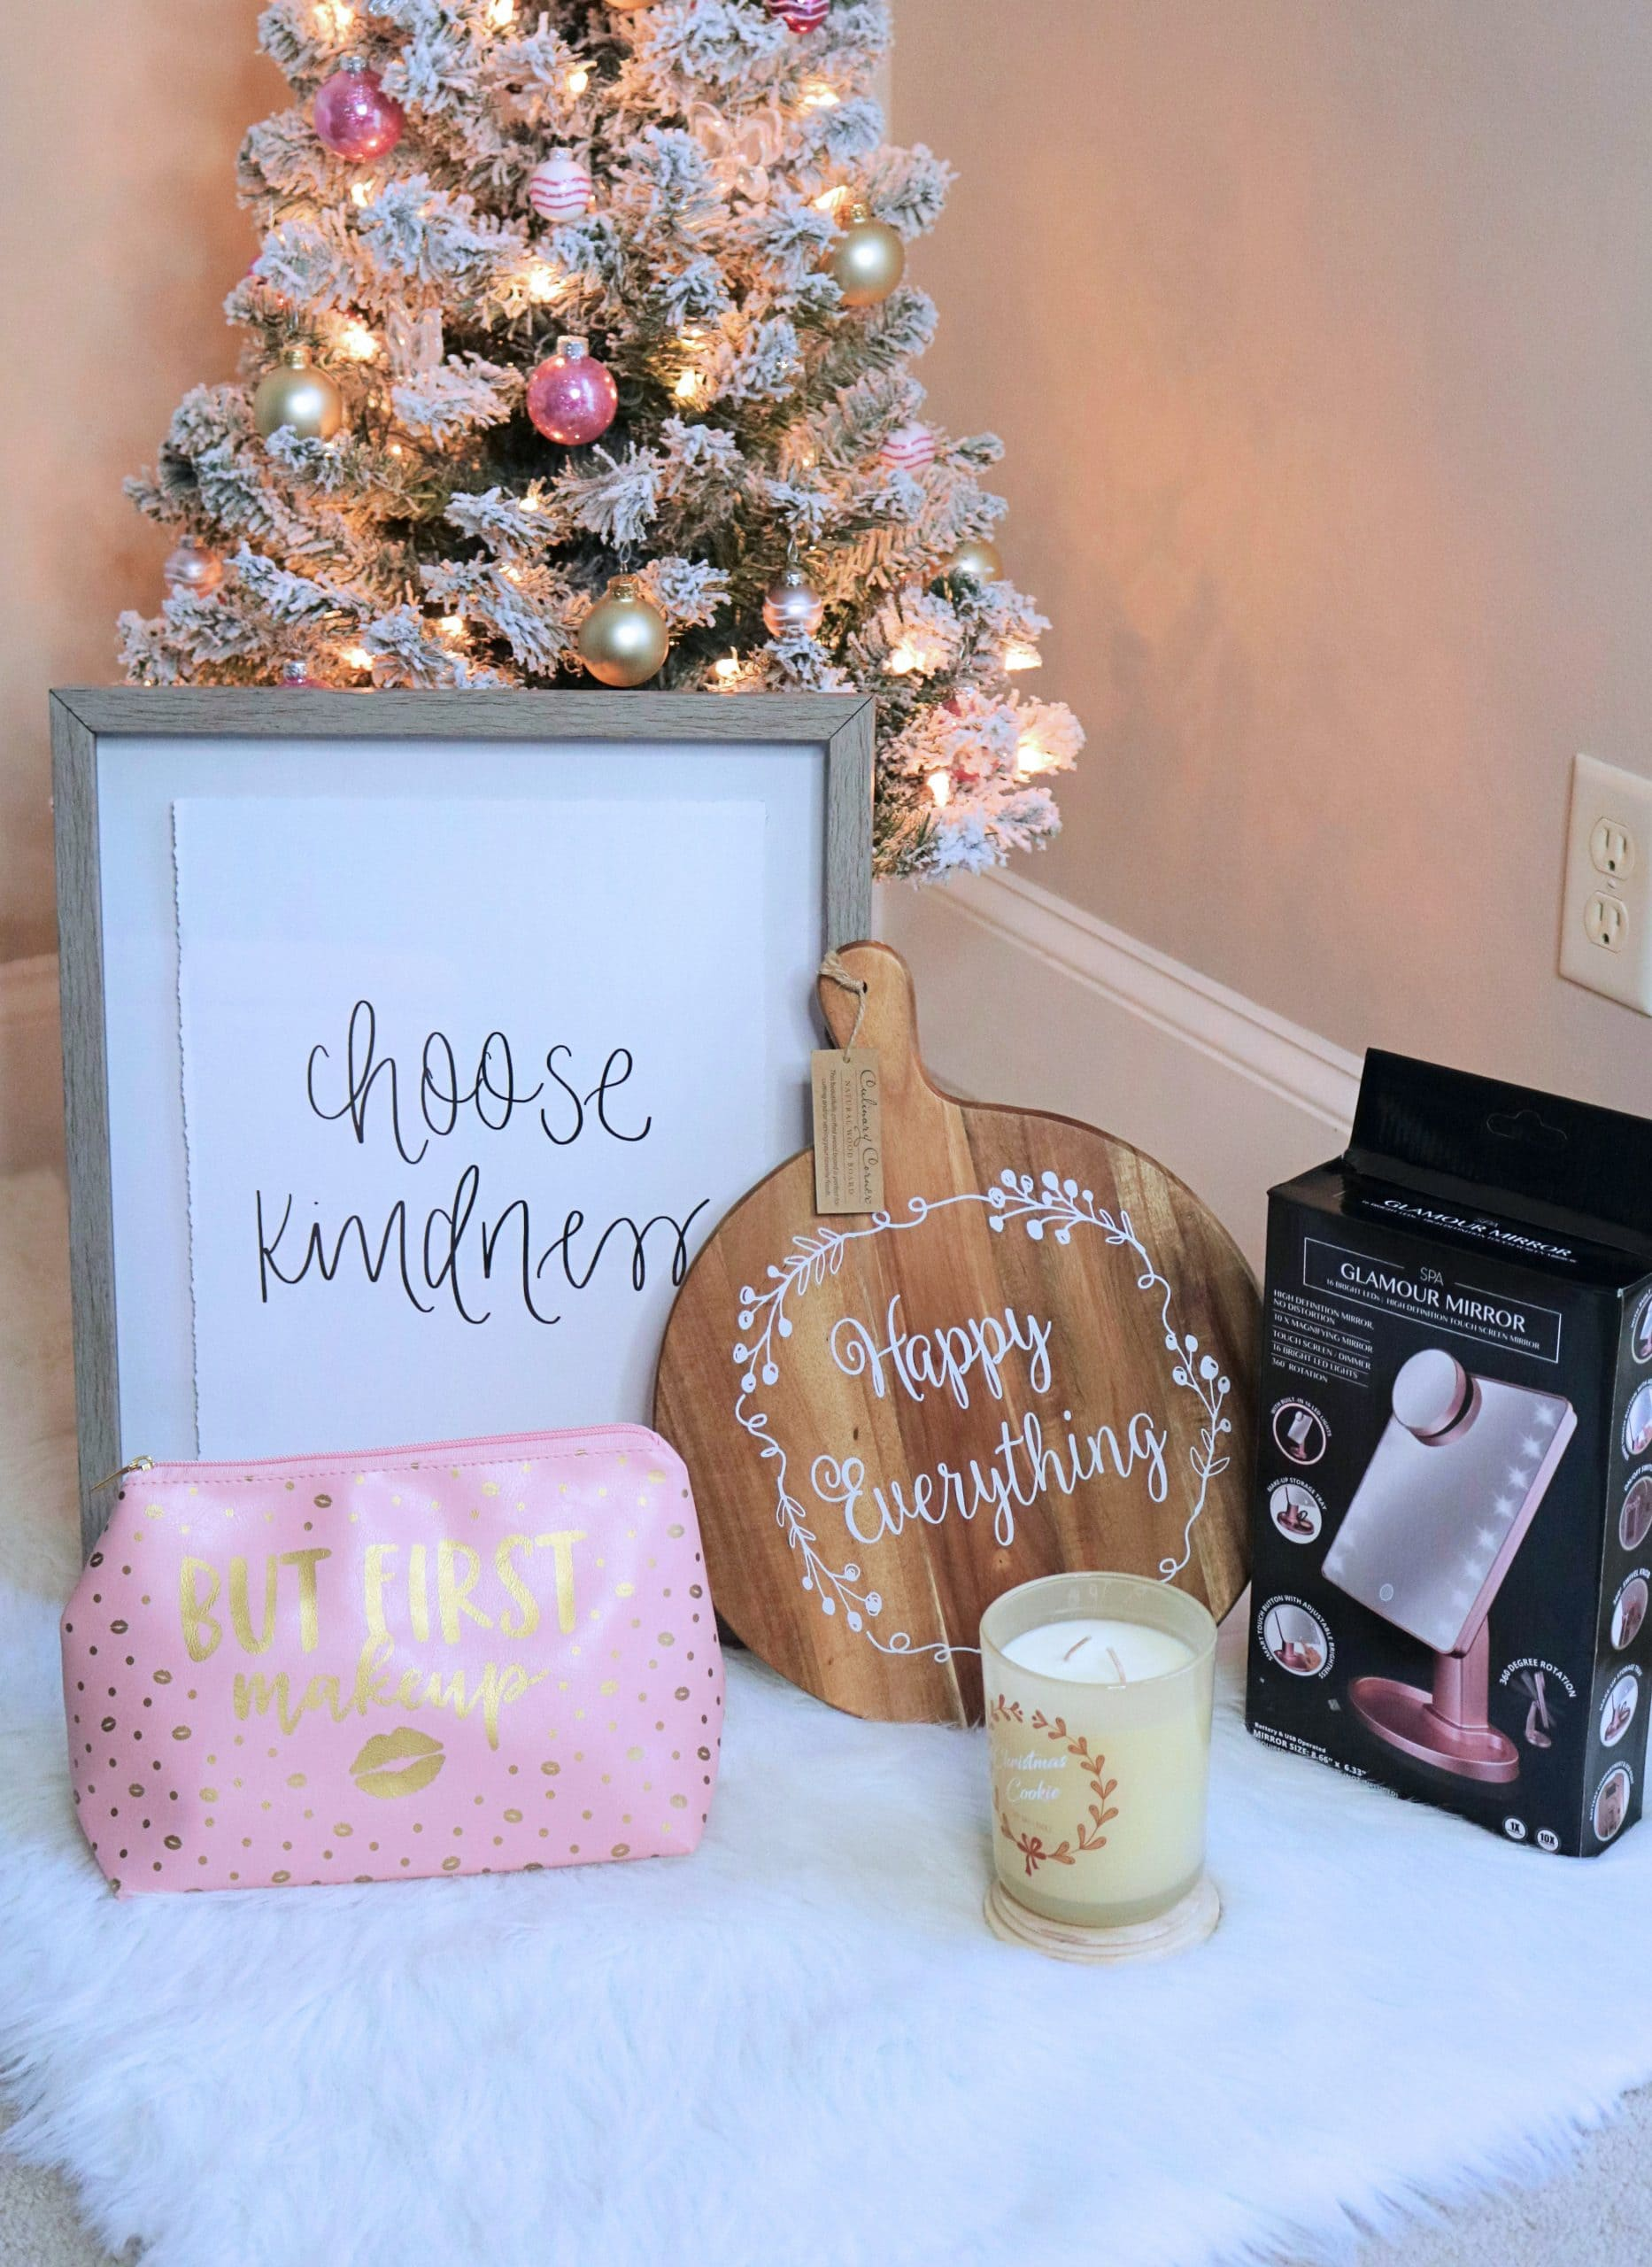 Still searching for the perfect Christmas gifts for everyone on your Christmas list? Check out my affordable Christmas gift guide with Bealls Outlet full of great Christmas gift ideas for him, her, kids, and the home! #ad #beallsoutlet #christmasgifts #christmasgiftideas #giftguide